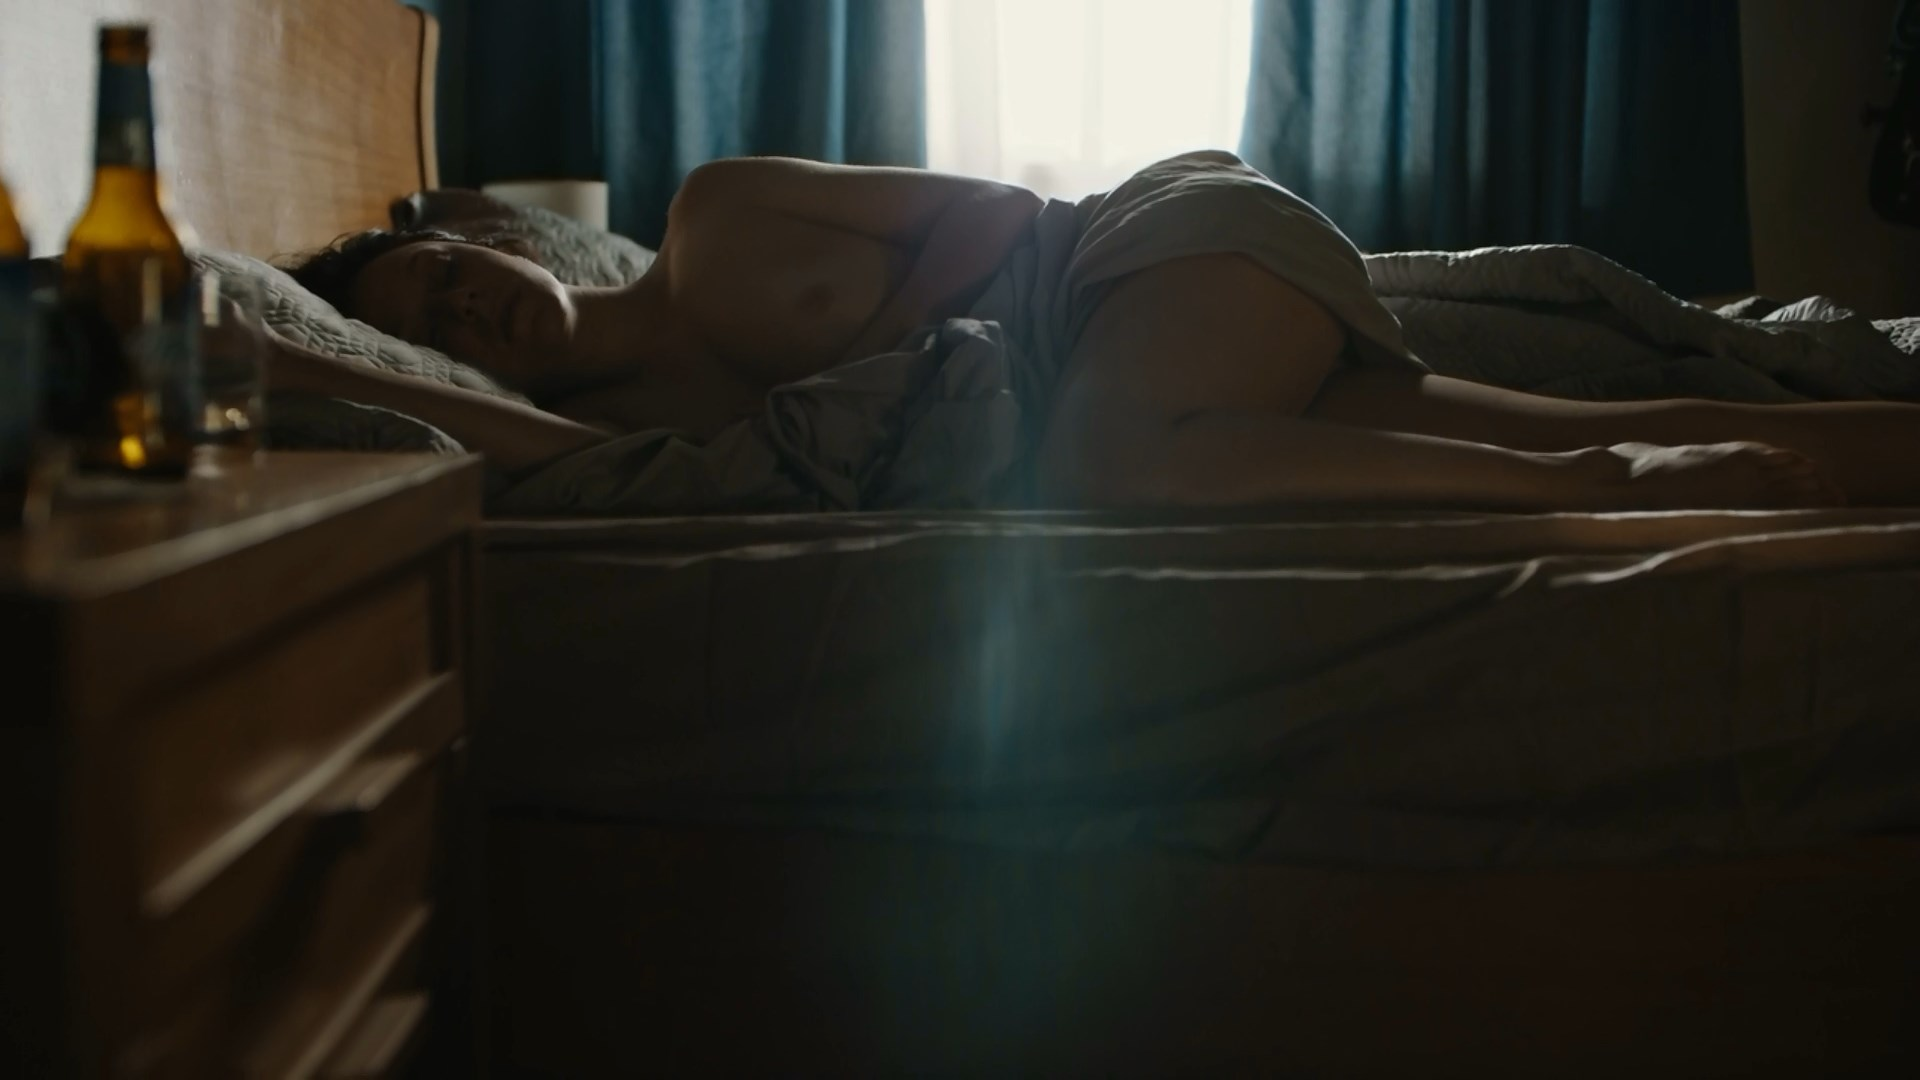 Caroline Abras nude - The Mechanism s02e03 (2019)